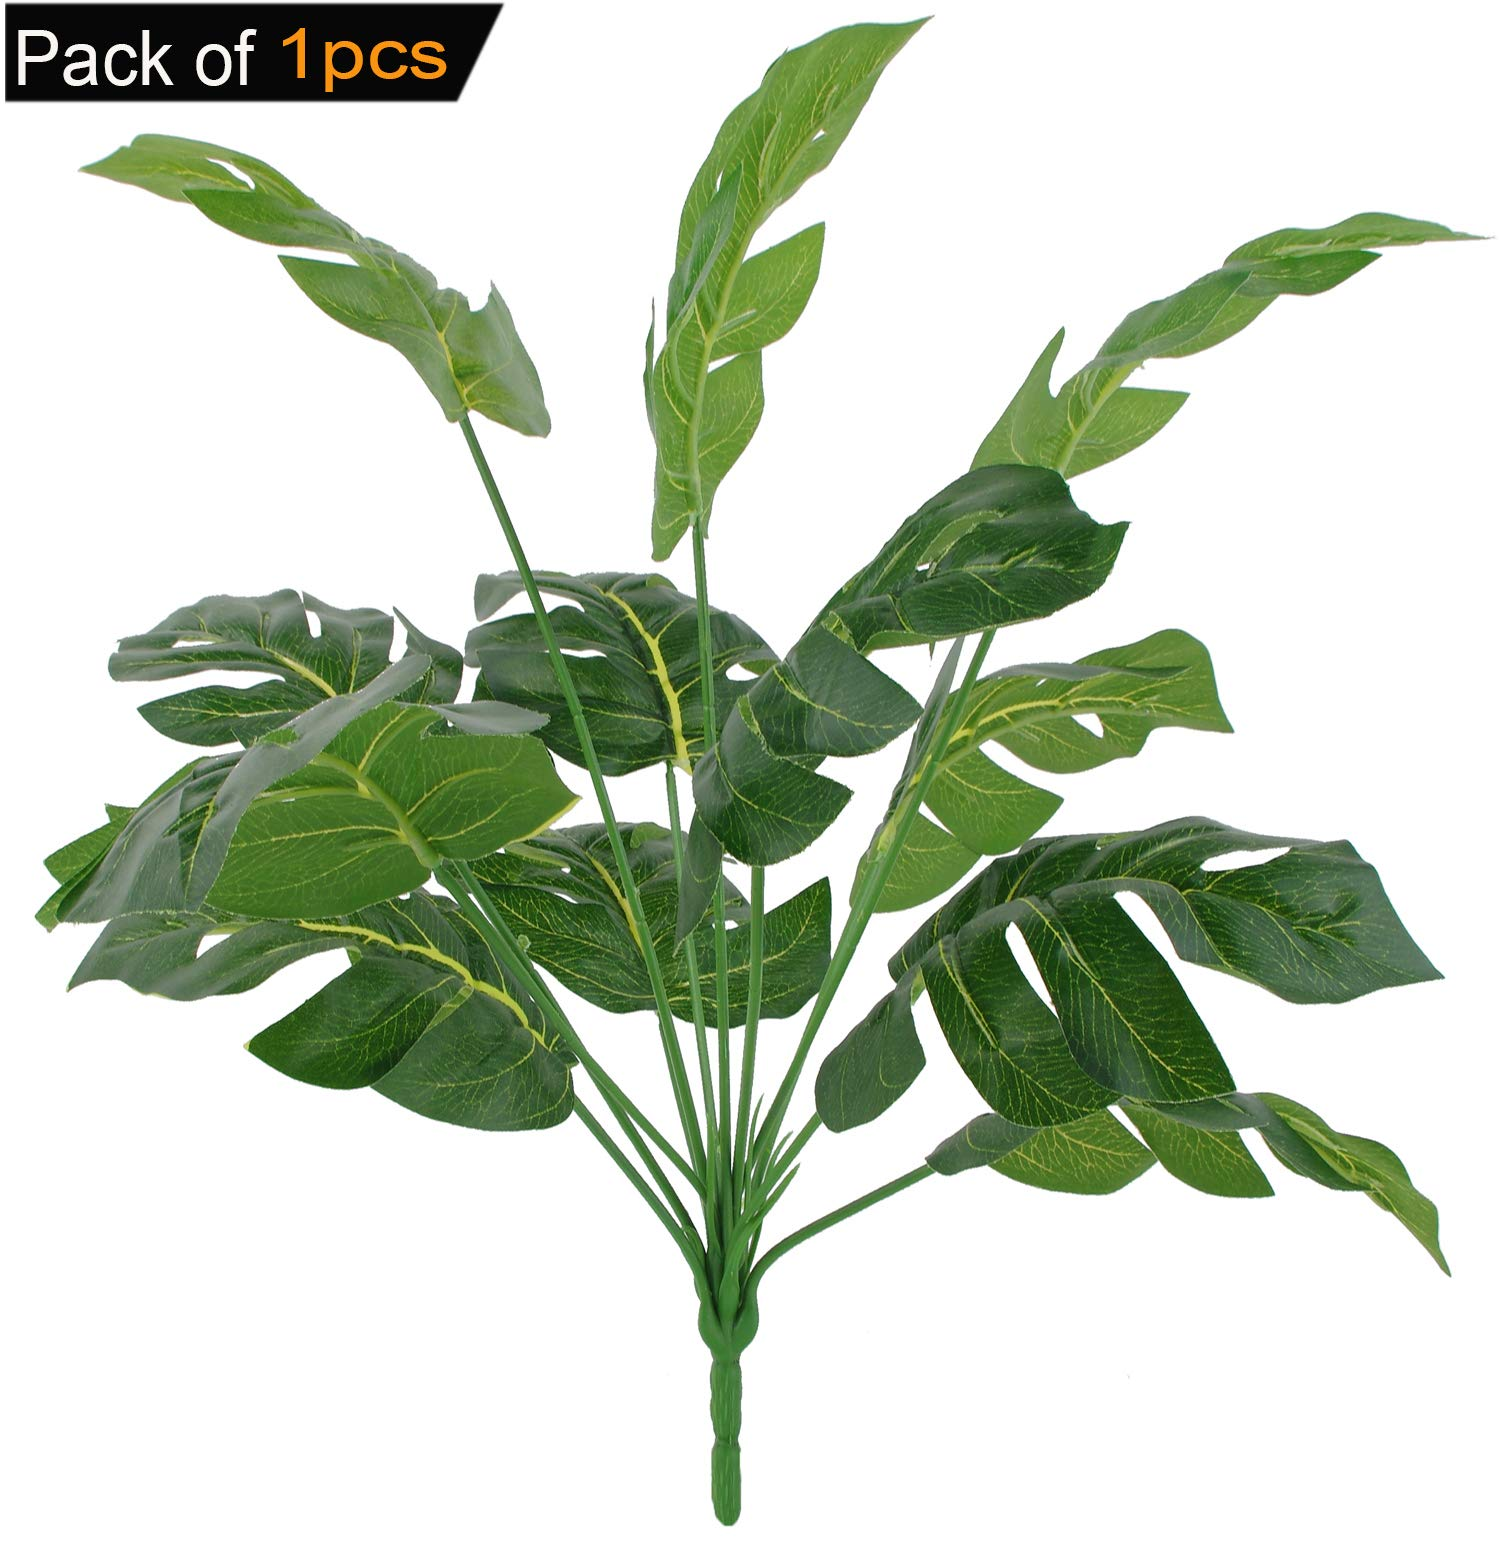 CLONG Artificial Plant Monstera Faux Shrubs Plastic Fake Flowers Filler Bushes UV Resistant Indoor Outside Window Box Greenery Home Garden Green Verandah Office Bonsai Wedding Decor - 1pcs